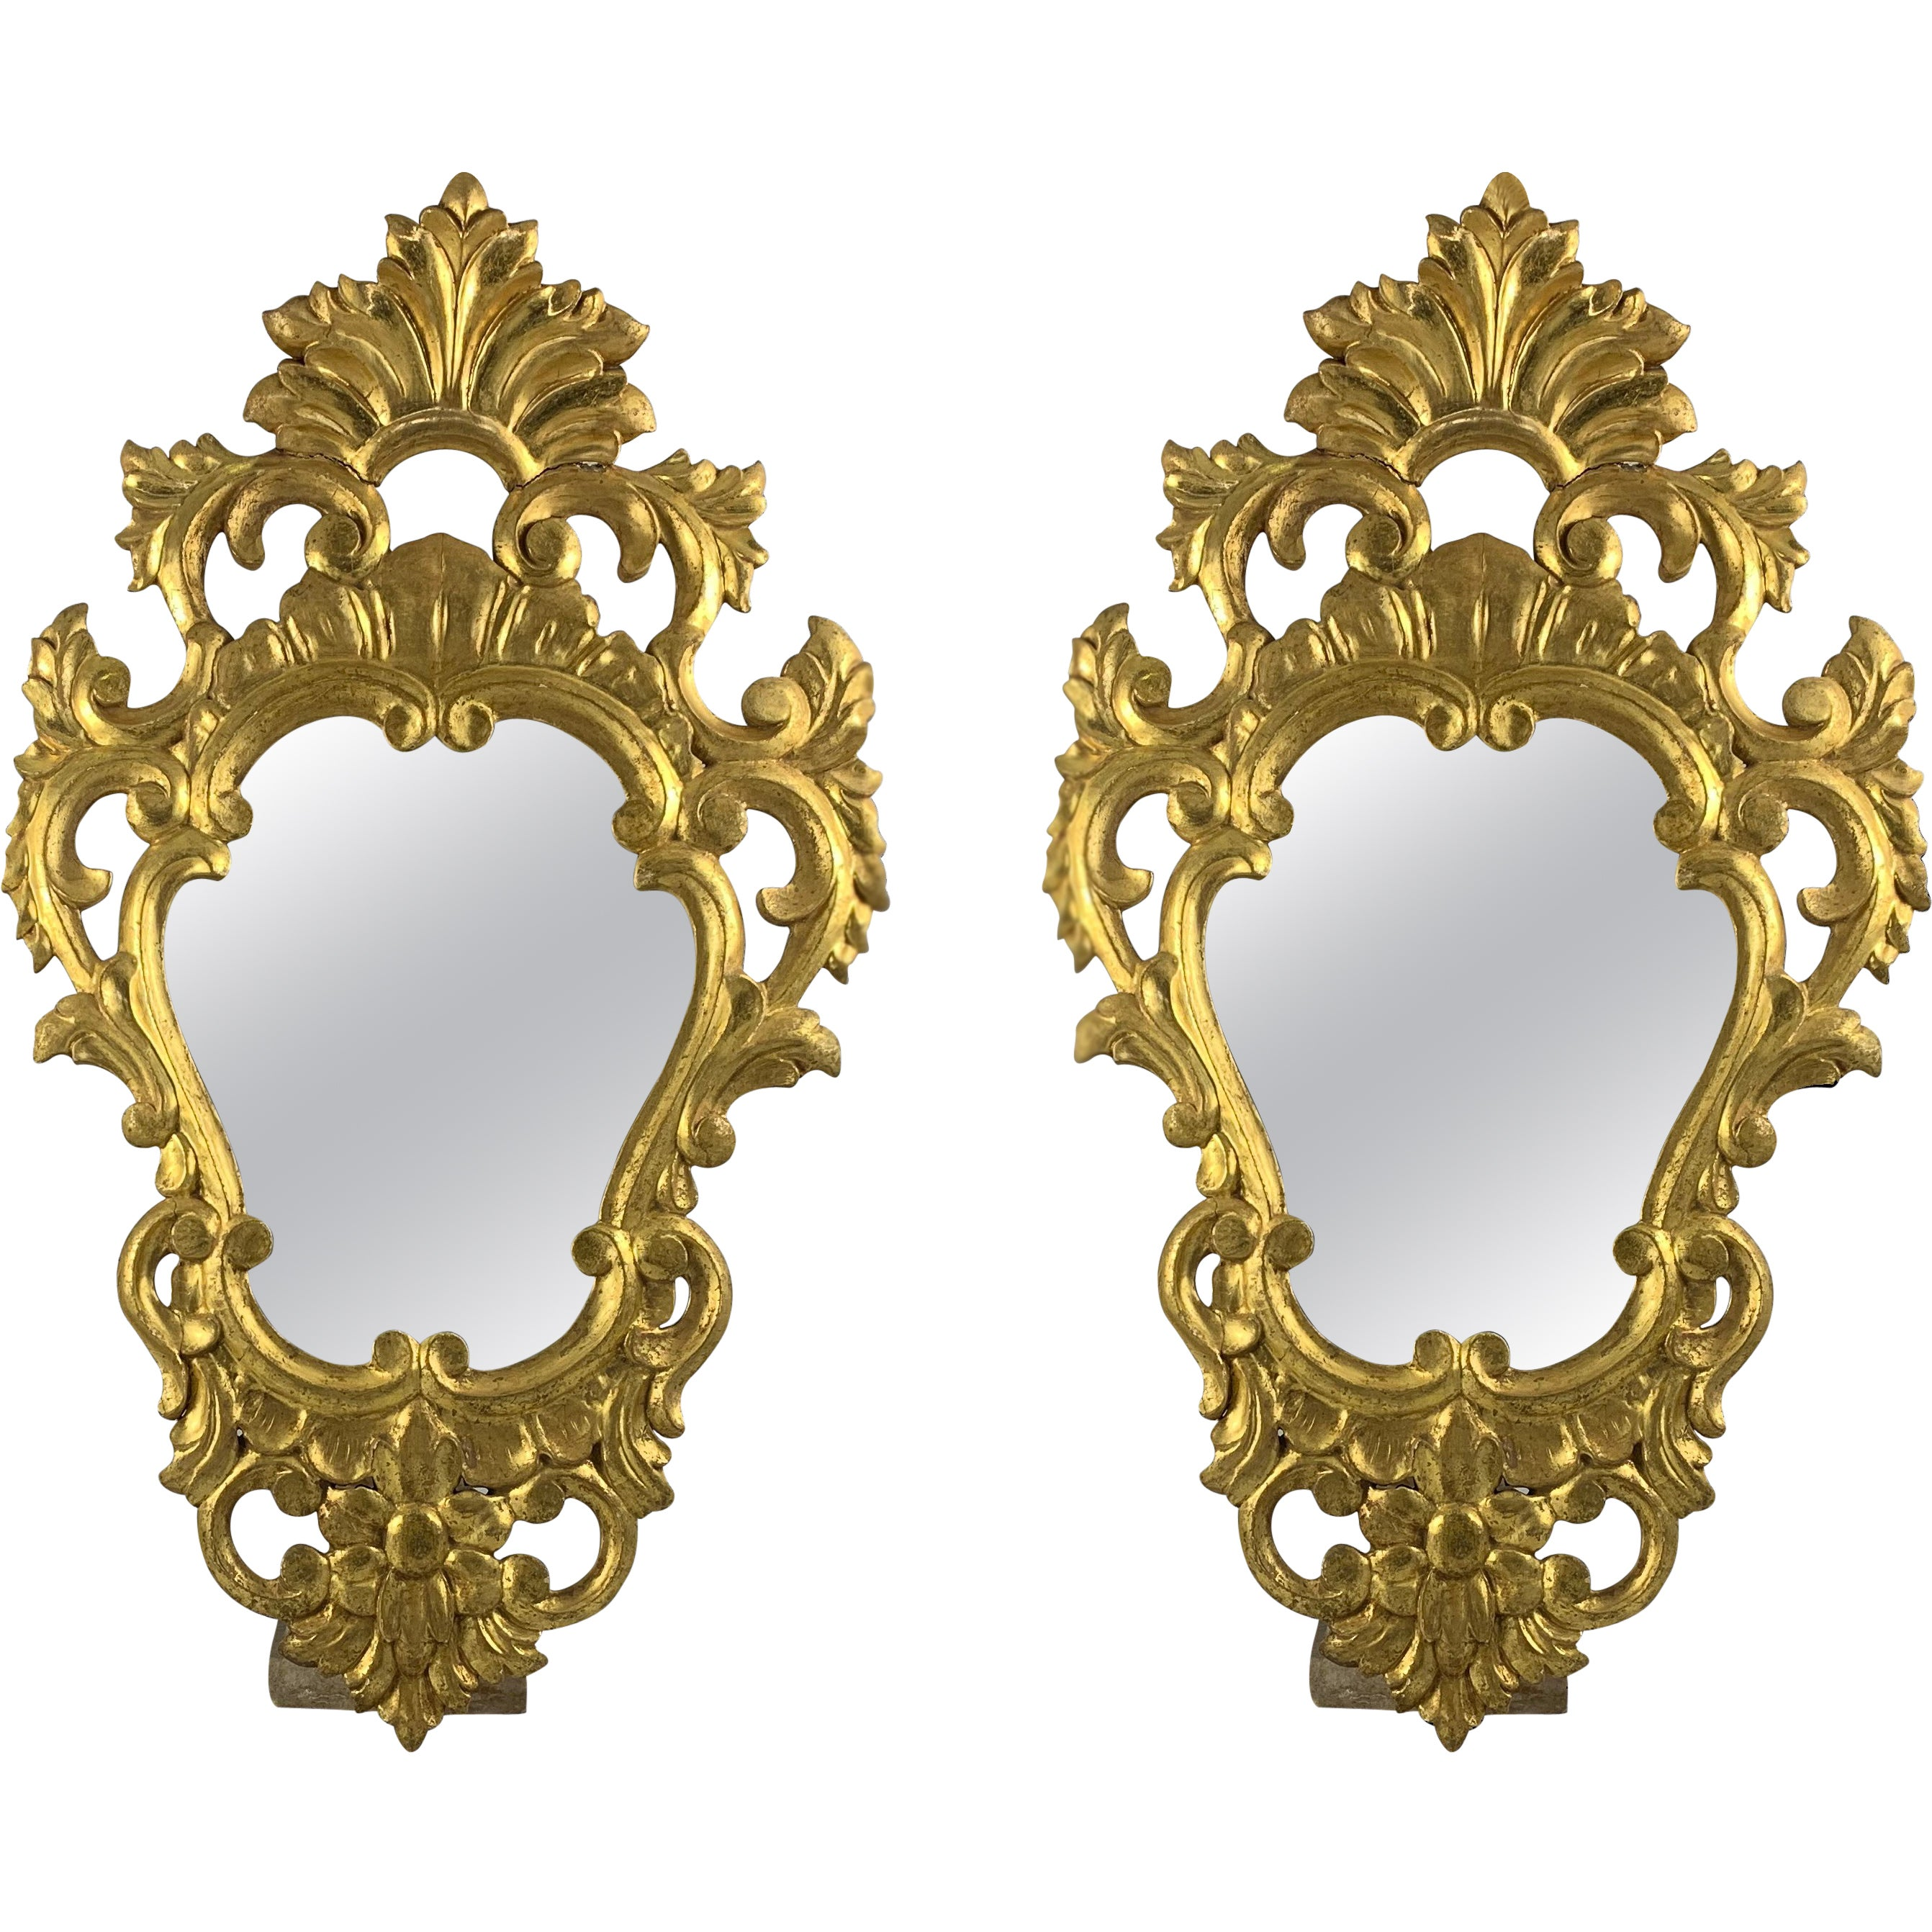 19th Century Pair of Gilt French Mirrors